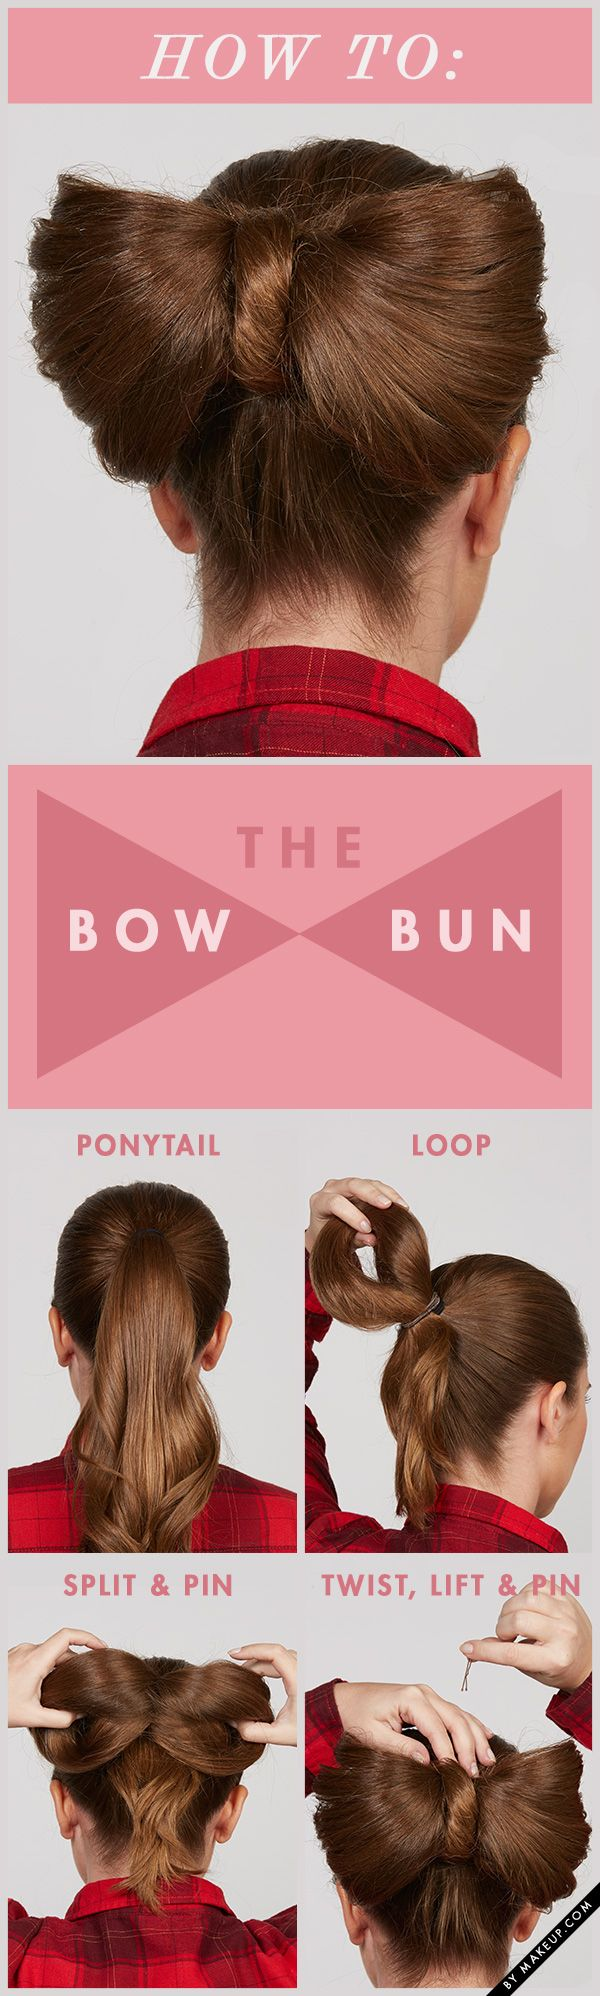 No hairstyle is cuter than a bow bun! While it may seem like it's hard to do, it's much easier than you think. Follow our easy DIY hair tutorial to do the fun, casual hairstyle.